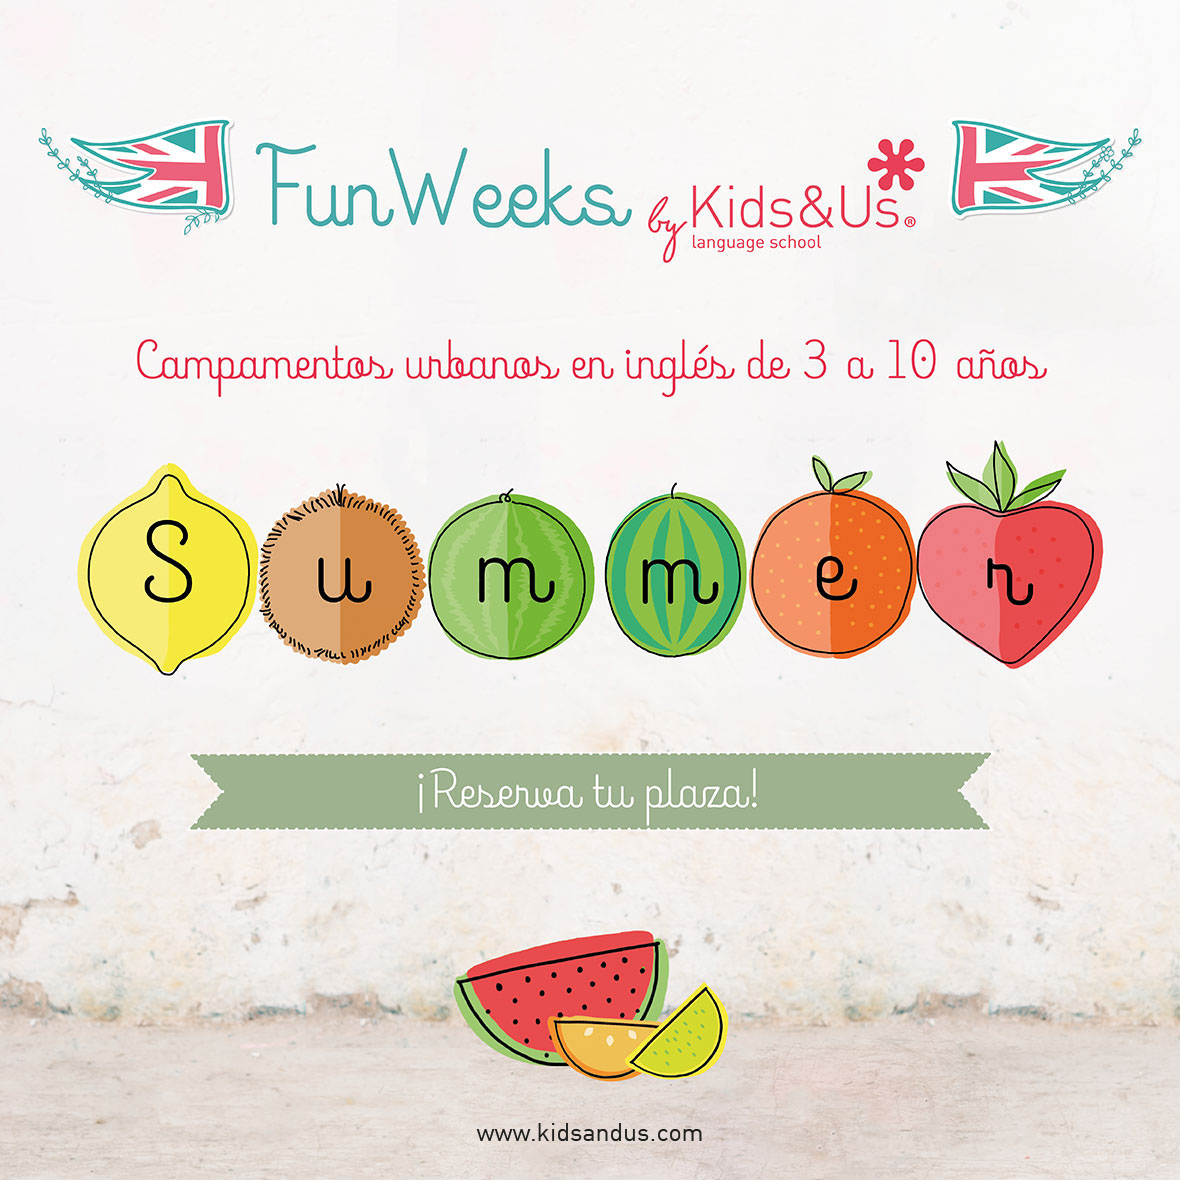 ¡Vuelven las Summer Fun Weeks de Kids&Us